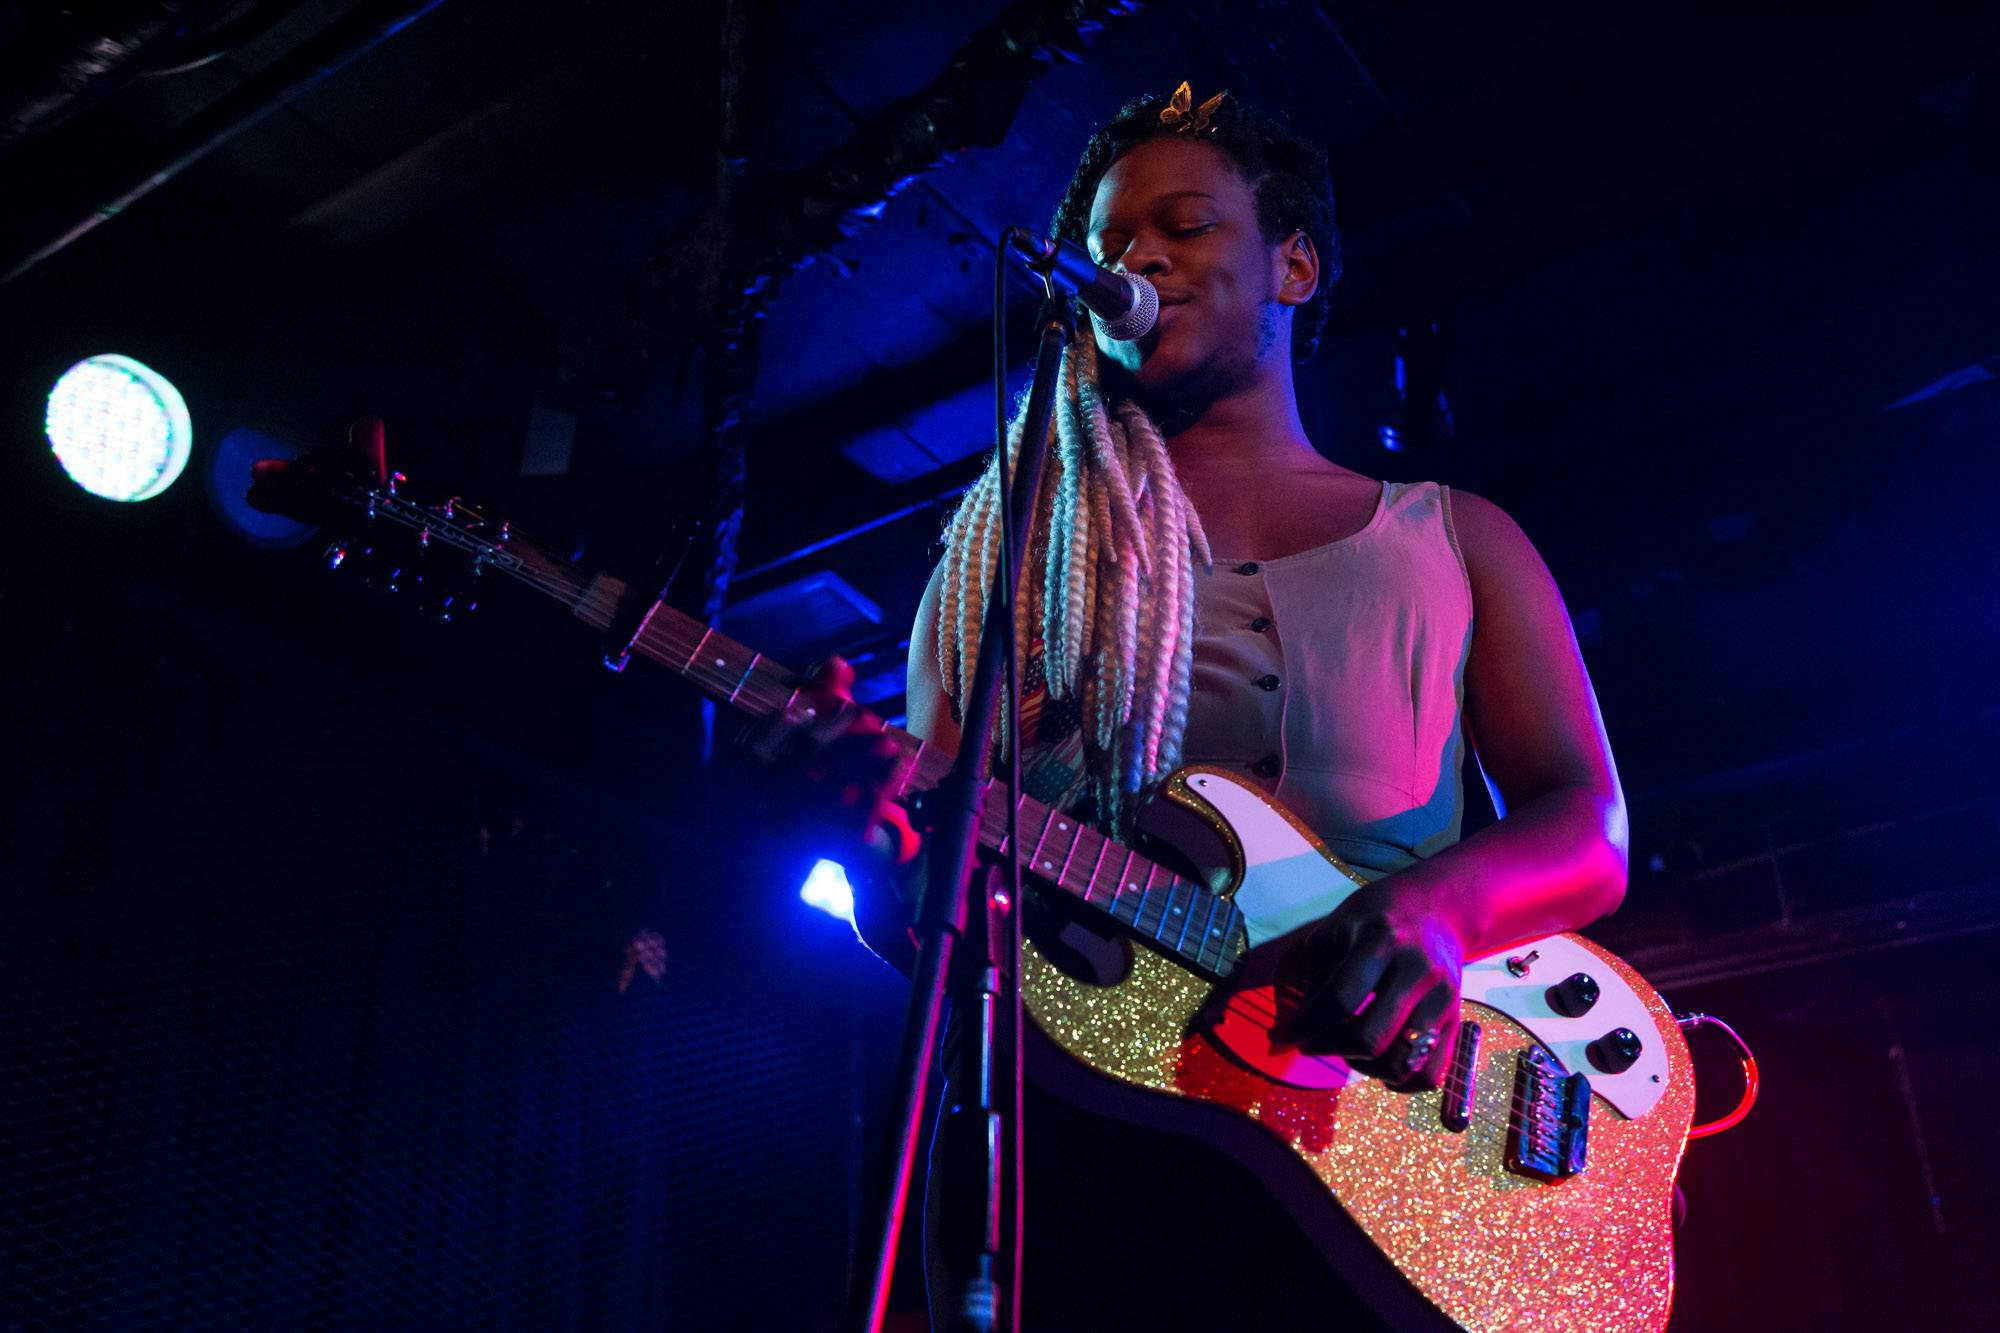 Shamir at the Biltmore Cabaret, Vancouver, Feb 28 2018. Kirk Chantraine photo.